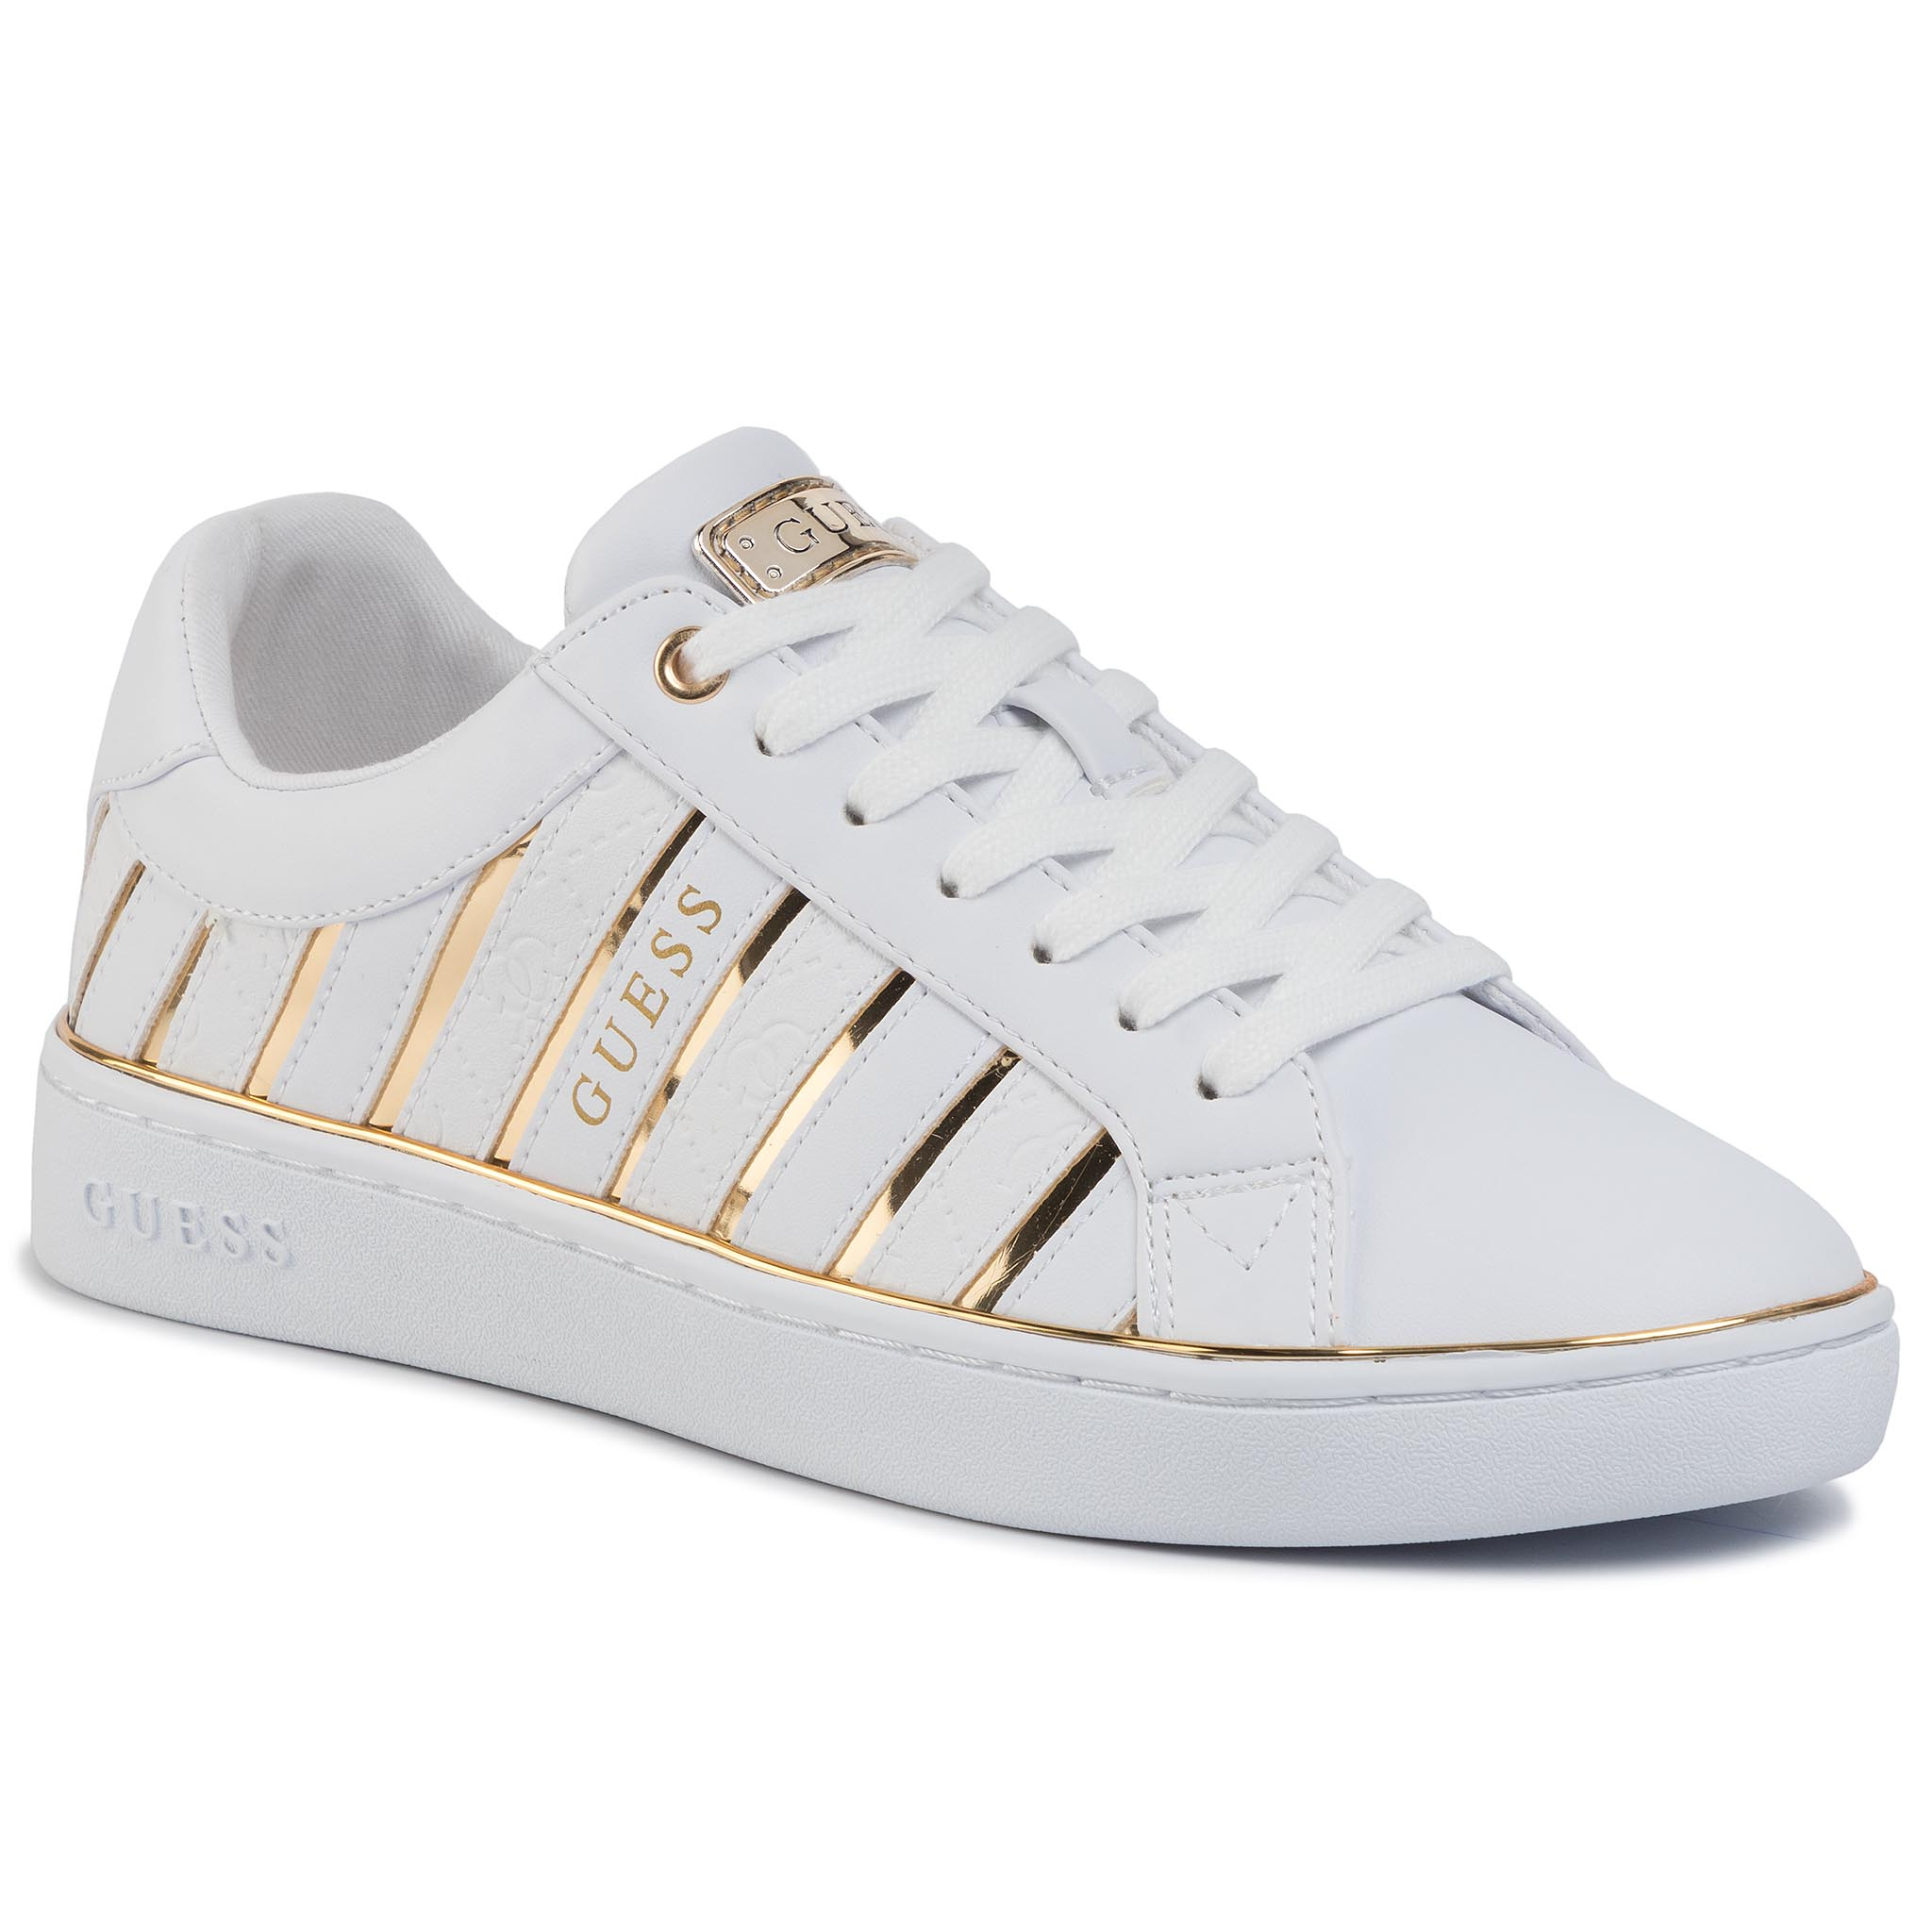 Sneakers GUESS - Bolier FL5BOL ELE12 WHITE/GOLD